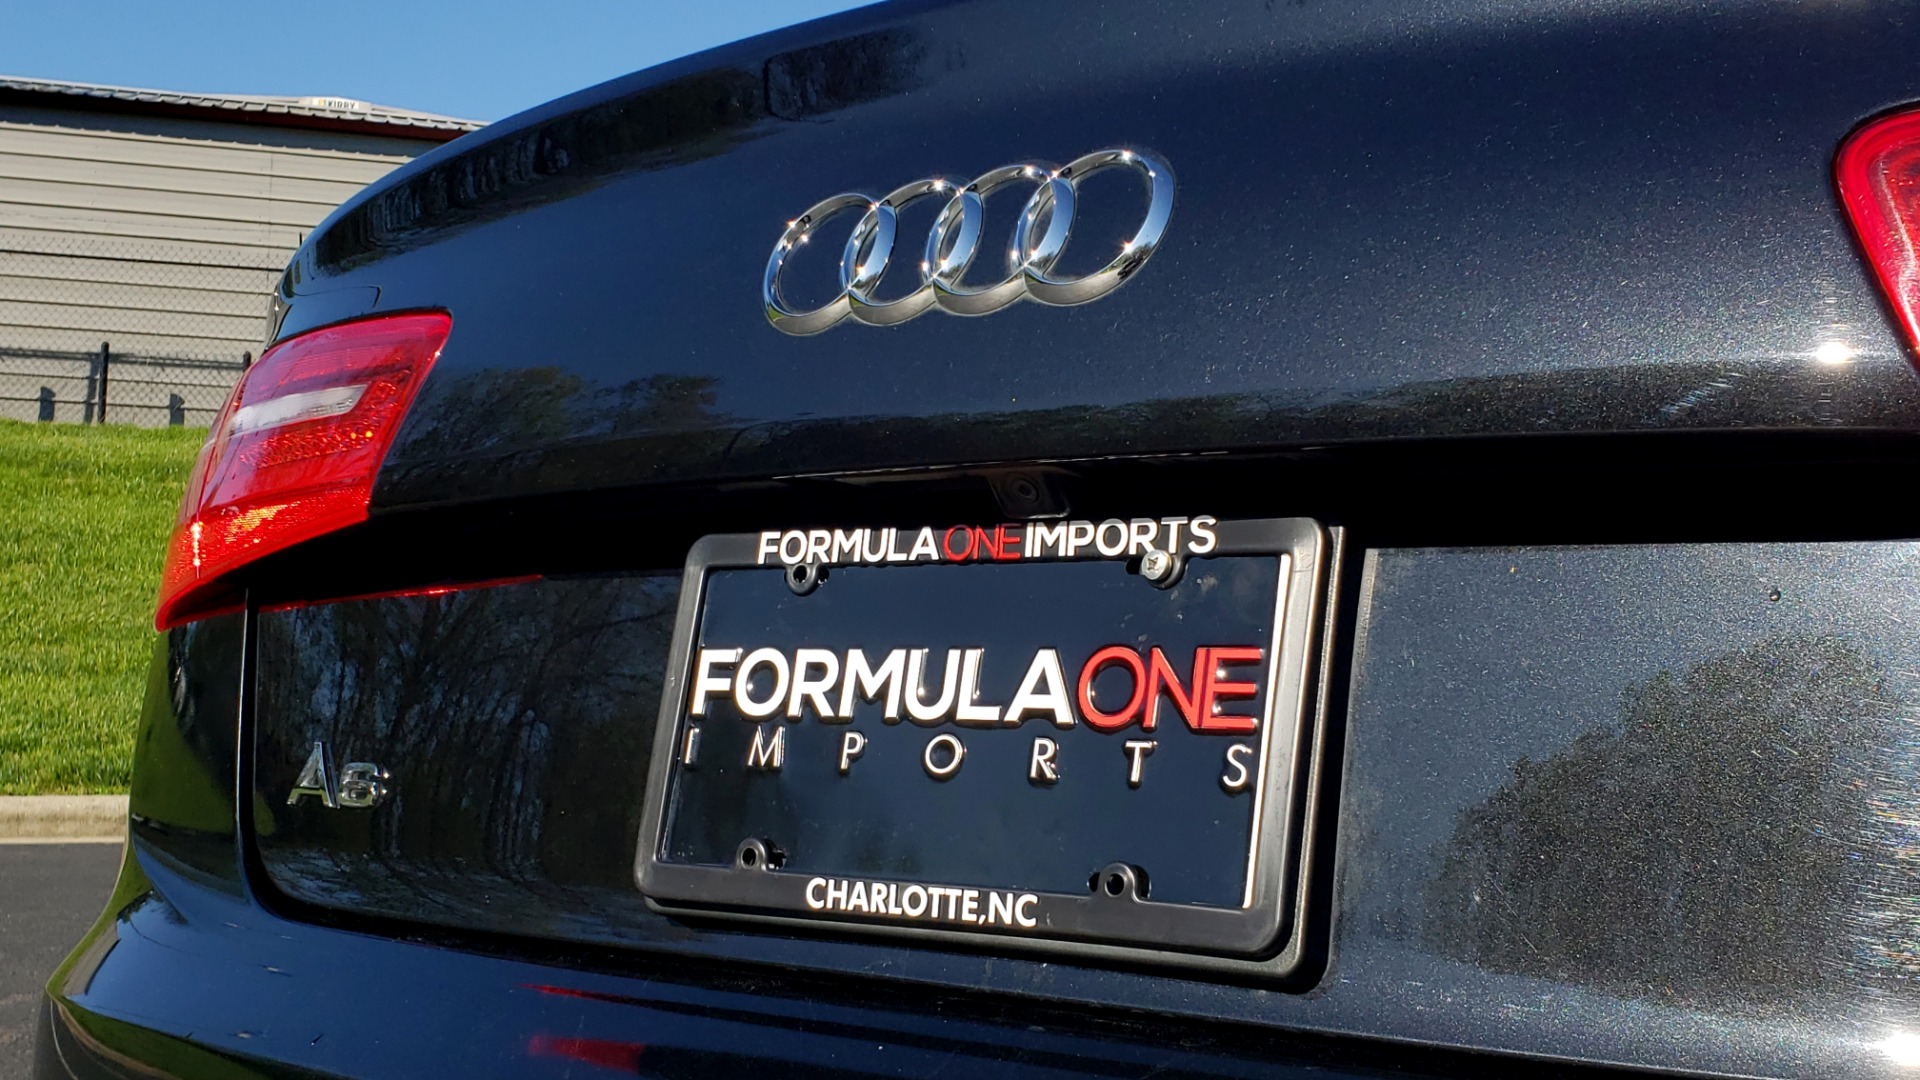 Used 2012 Audi A6 2.0T PREMIUM PLUS / NAV / SNRF / CVT TRANS / REARVIEW for sale Sold at Formula Imports in Charlotte NC 28227 23